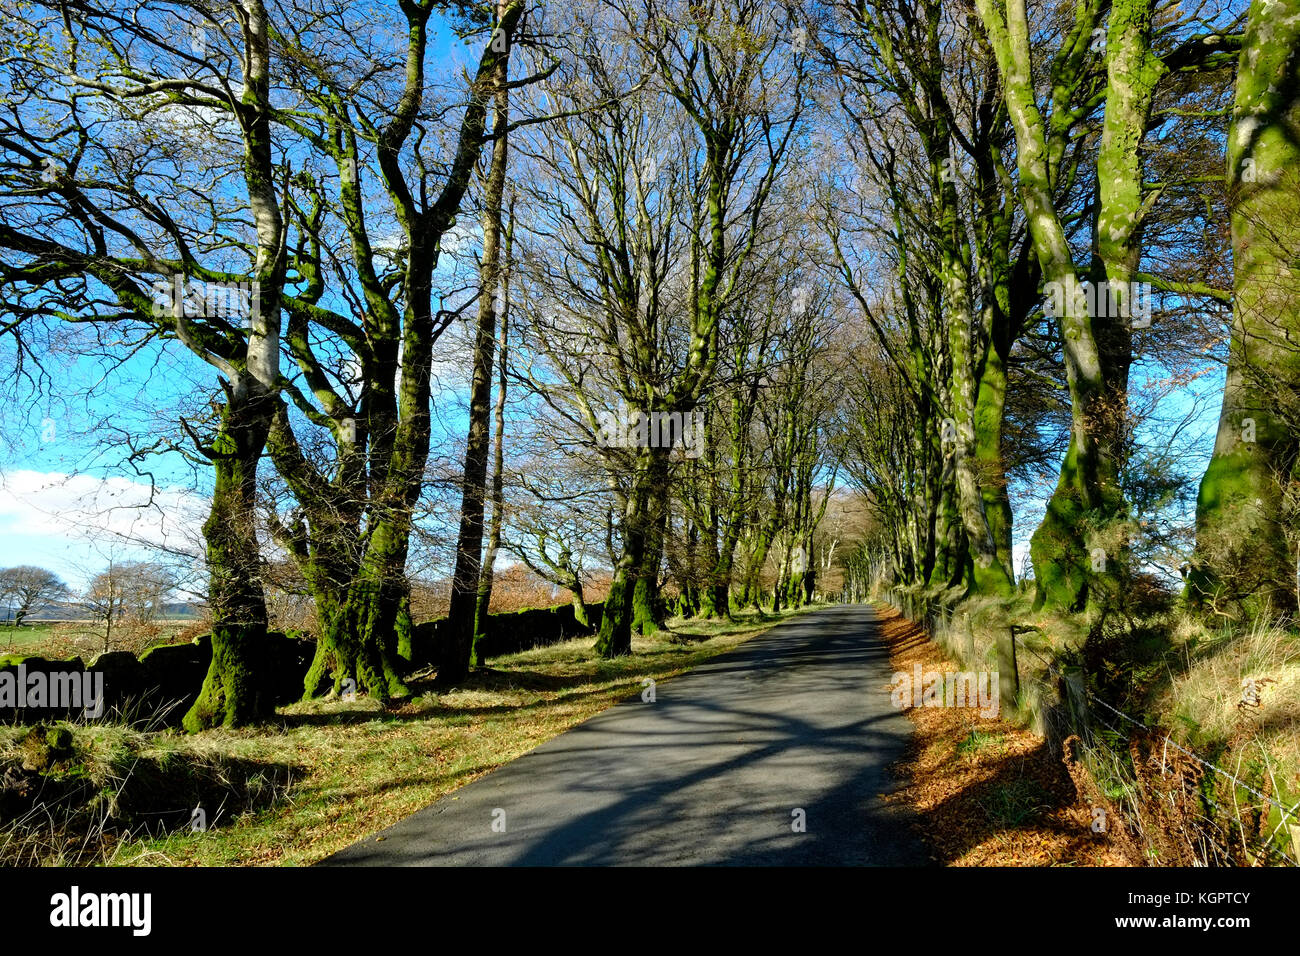 Avenue of beech trees, Dartmoor, Devon. UK - Stock Image